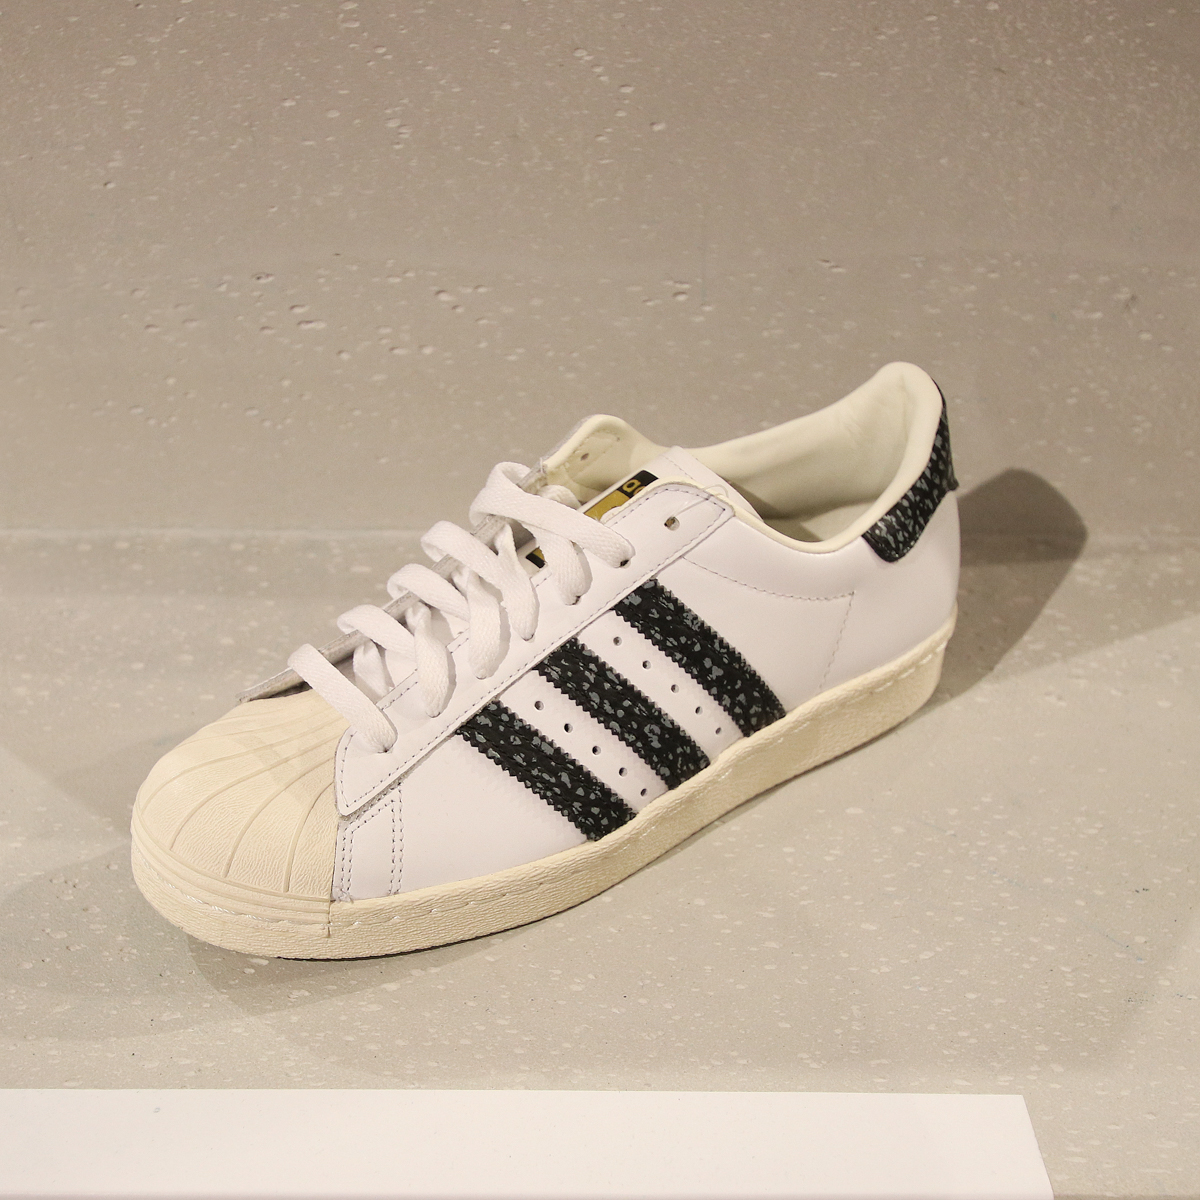 9- Adidas Original SuperStar